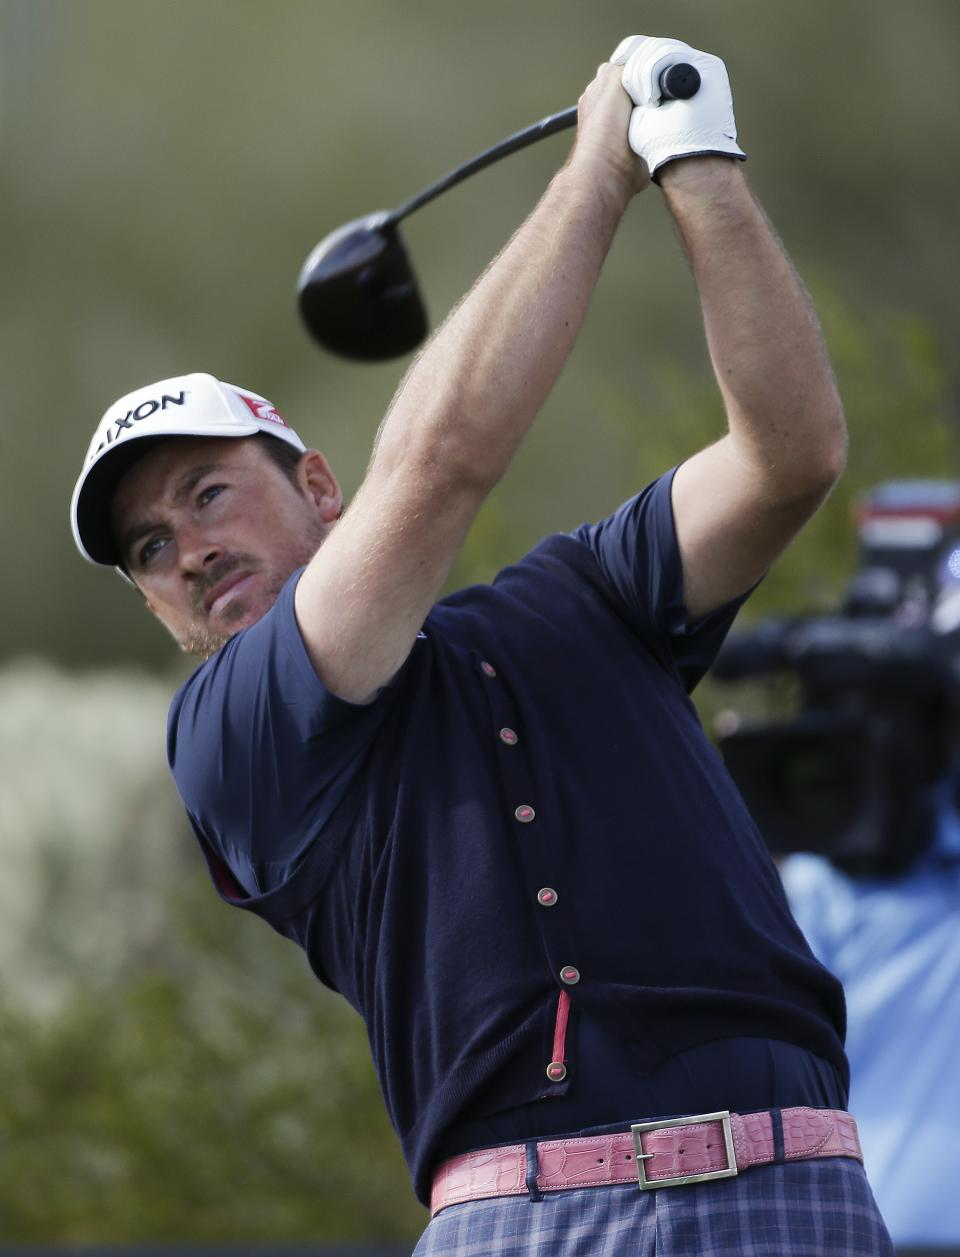 Graeme McDowell, of Northern Ireland, tees off the 17th hole in the second round against Alexander Noren, of Sweden, during the Match Play Championship golf tournament, Friday, Feb. 22, 2013, in Marana, Ariz. McDowell won 1 up in 20 holes. (AP Photo/Ted S. Warren)